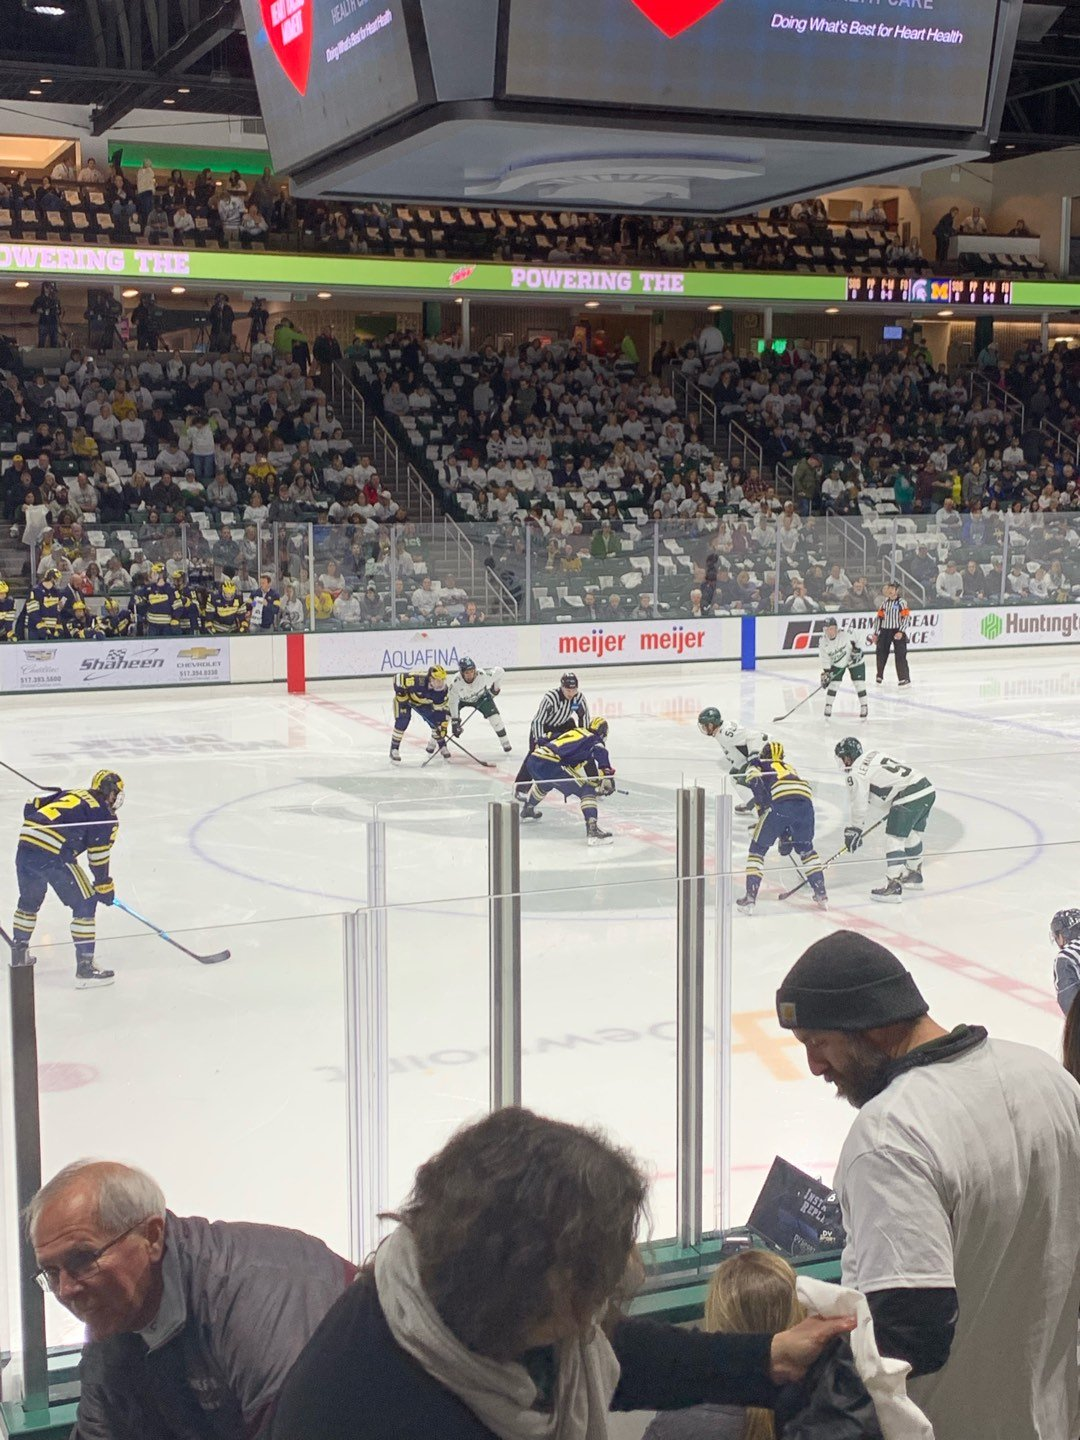 Munn Ice Arena Section V Row 9 Seat 8